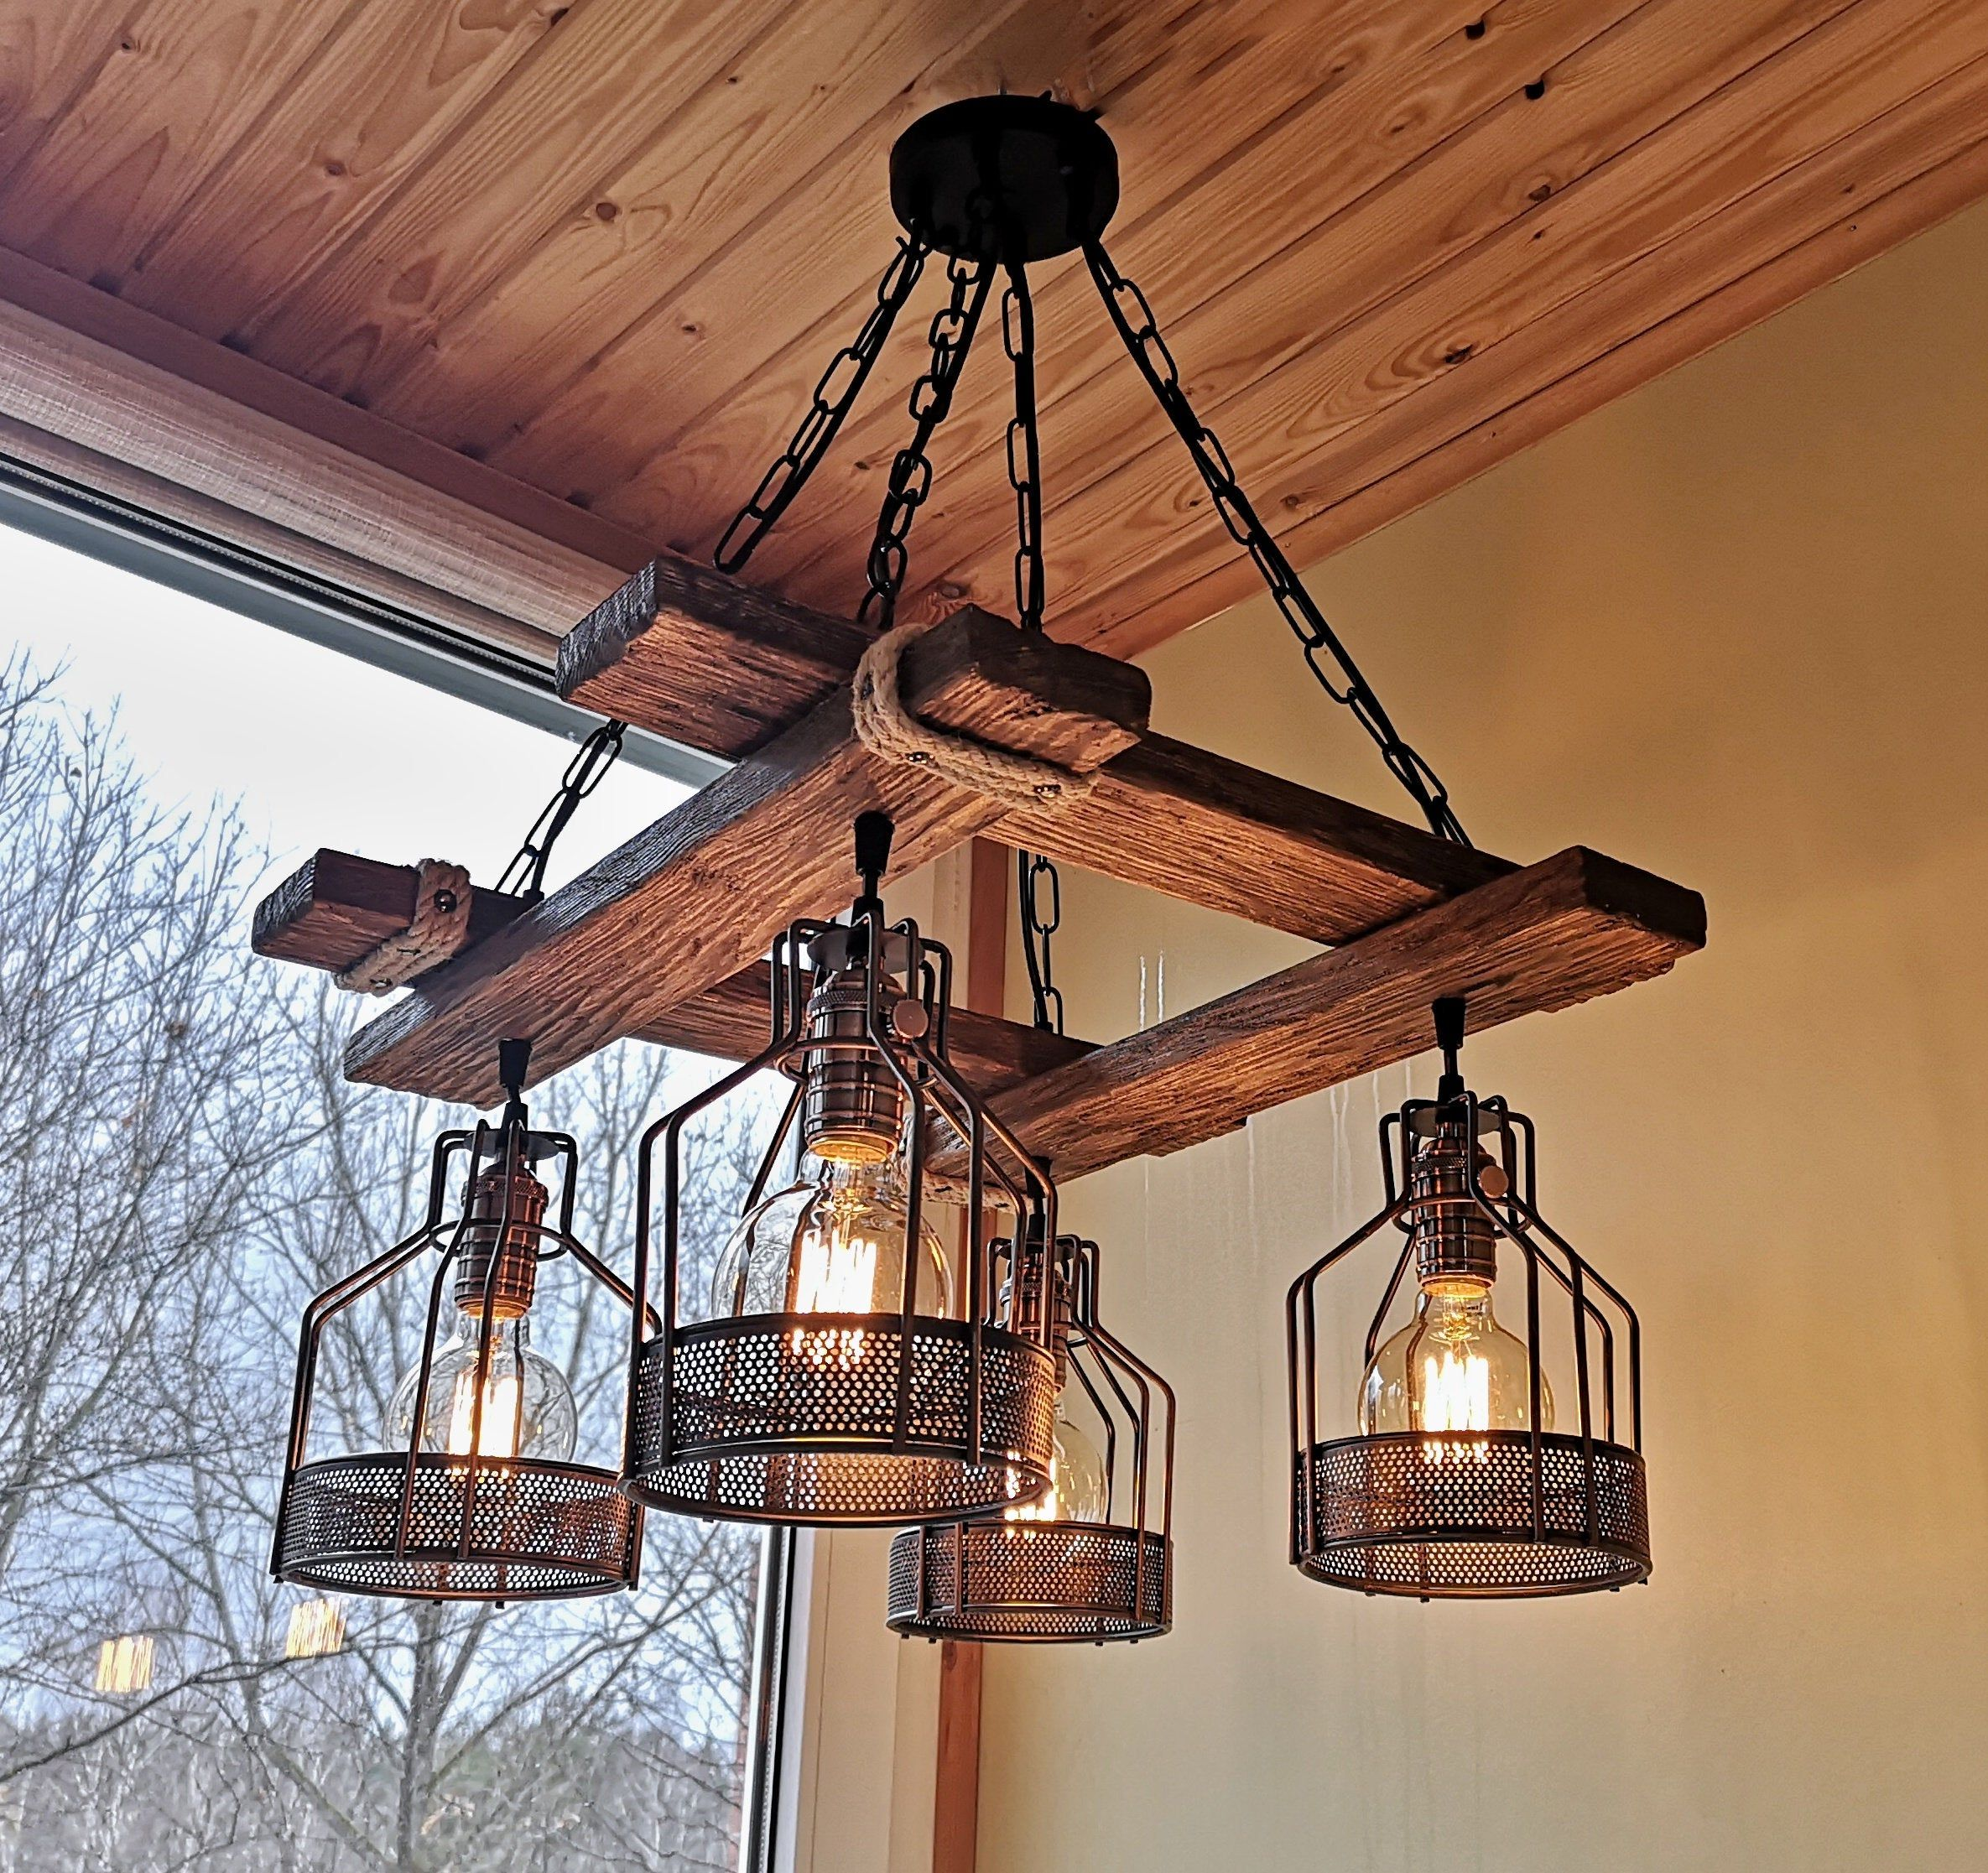 Rustic Light Fixture Hanging Light Rustic Lighting Industrial Pendant Light Wood Chandelier Rustic Light Farmhouse Light Dining In 2020 Rustic Light Fixtures Rustic Pendant Lighting Hanging Light Fixtures